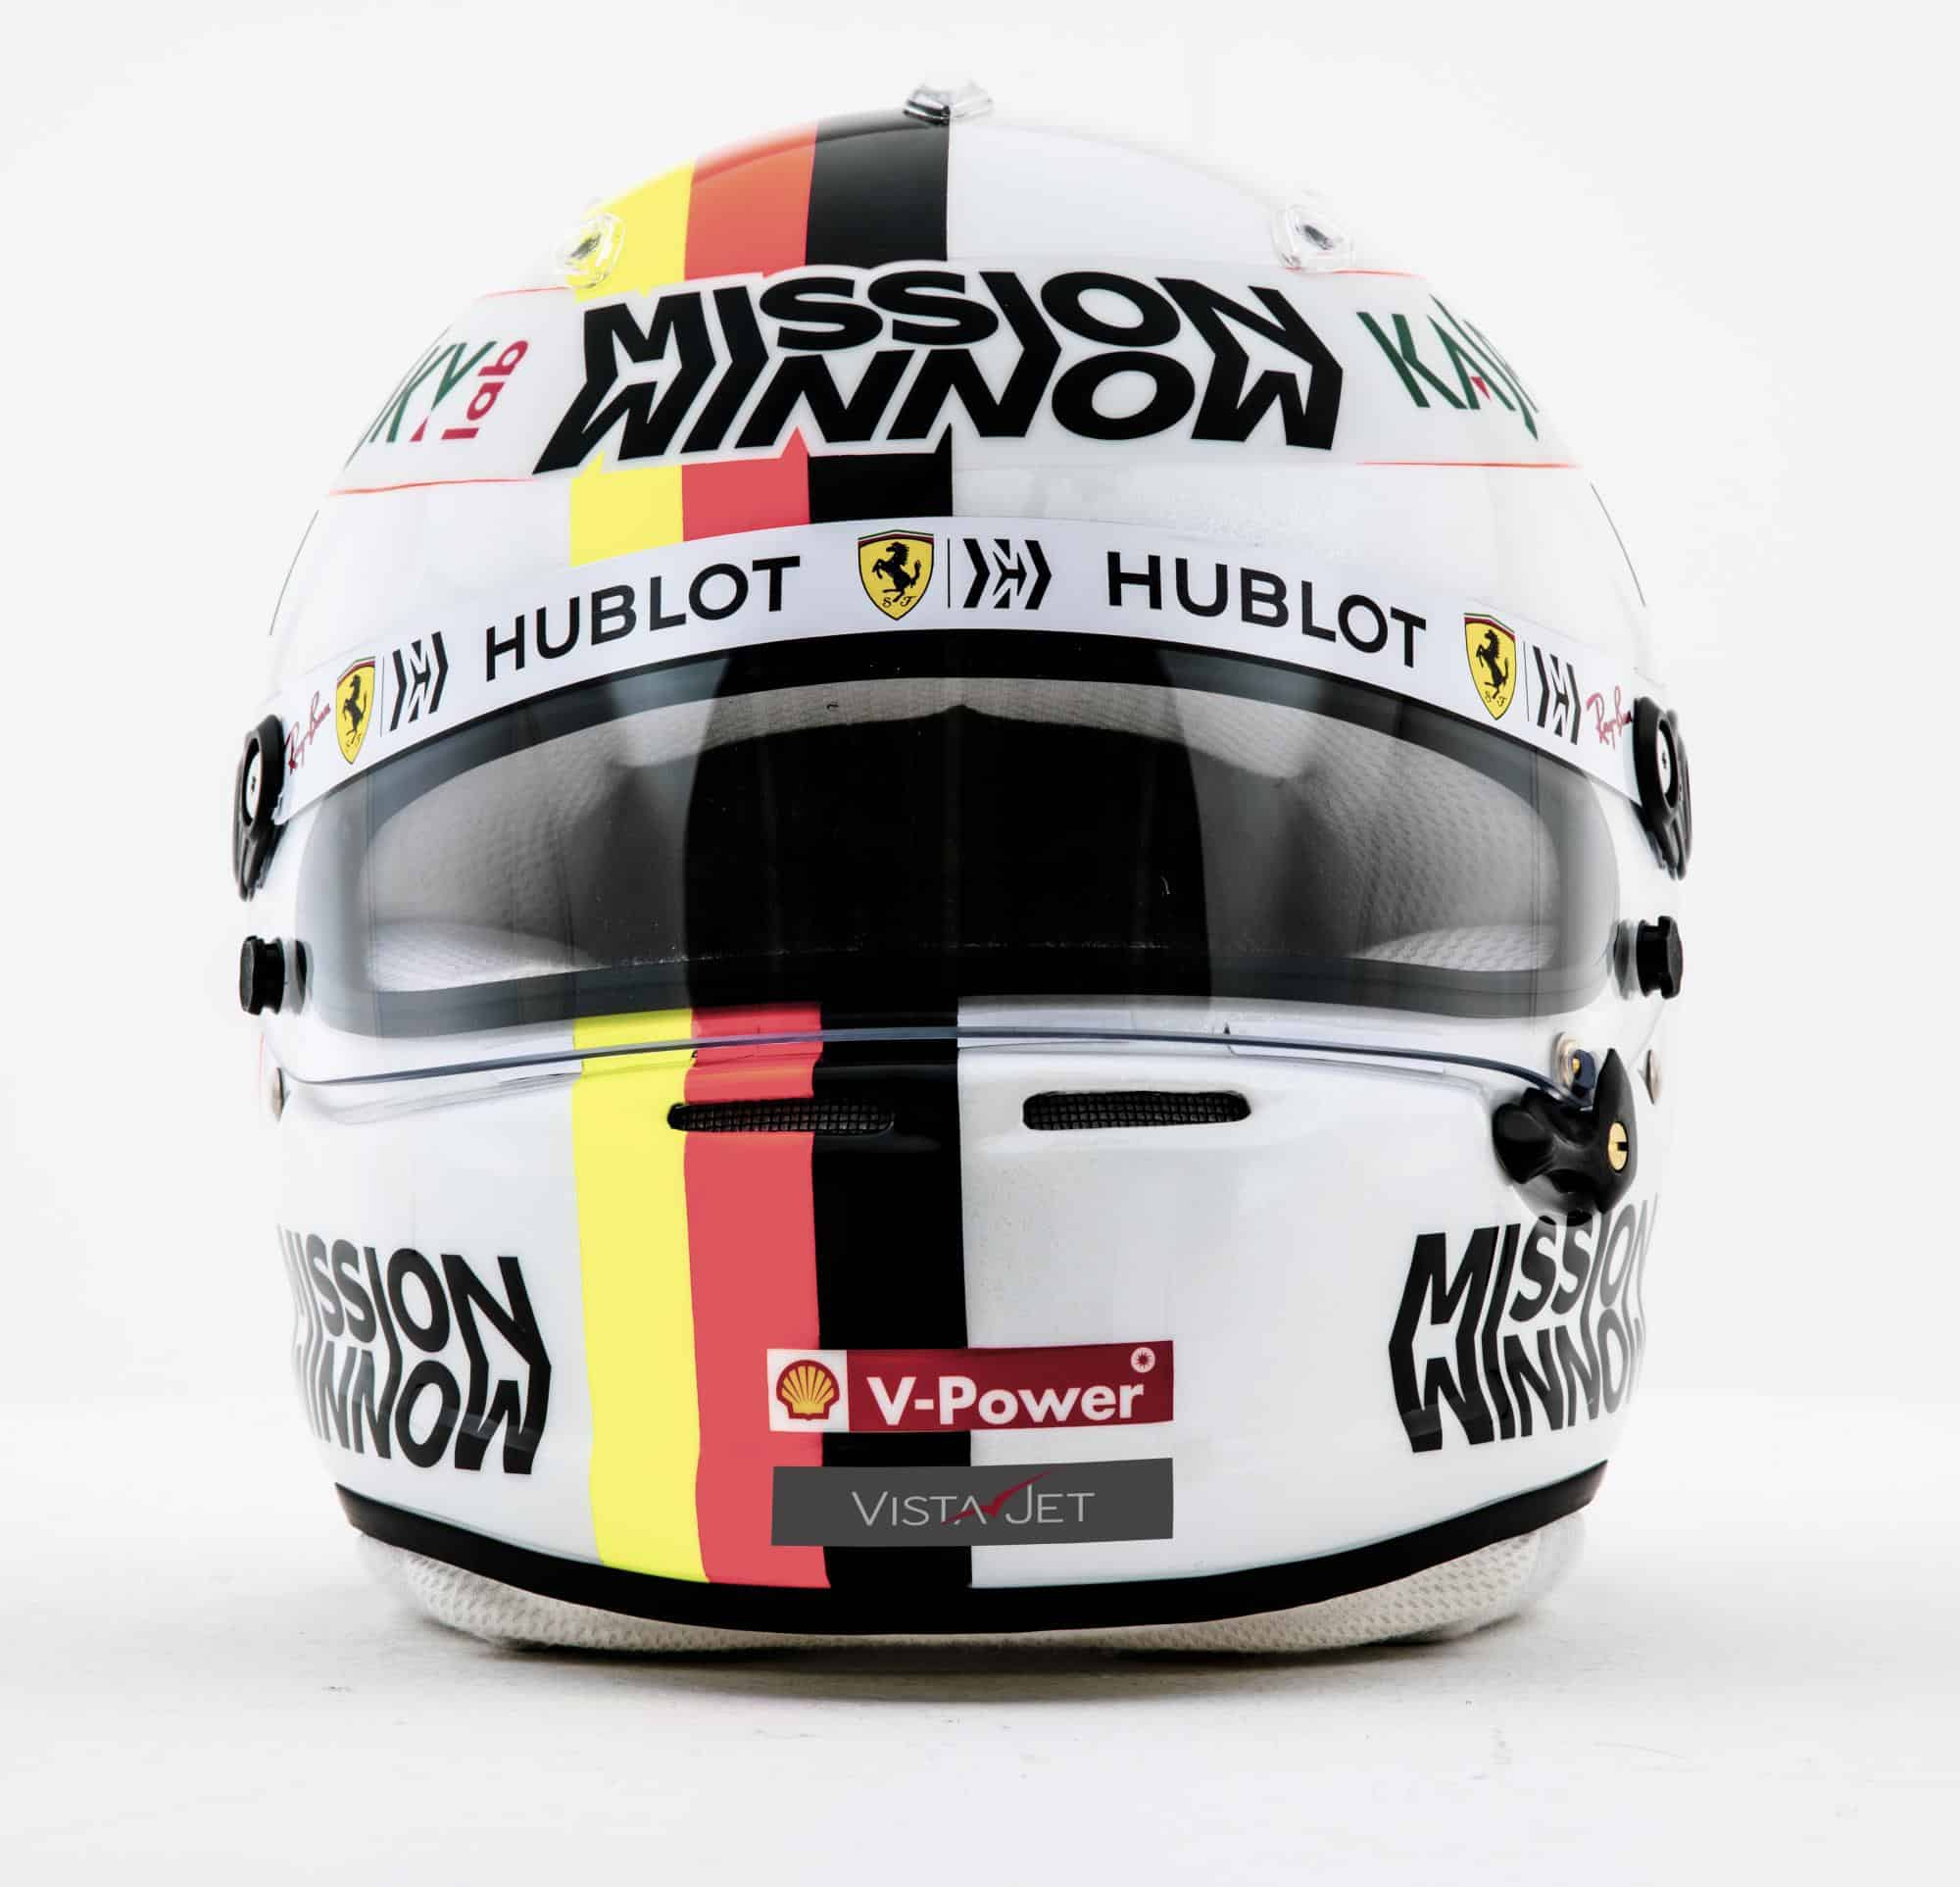 2019 F1 Sebastian Vettel Ferrari helmet front Photo Ferrari Edited by MAXF1net